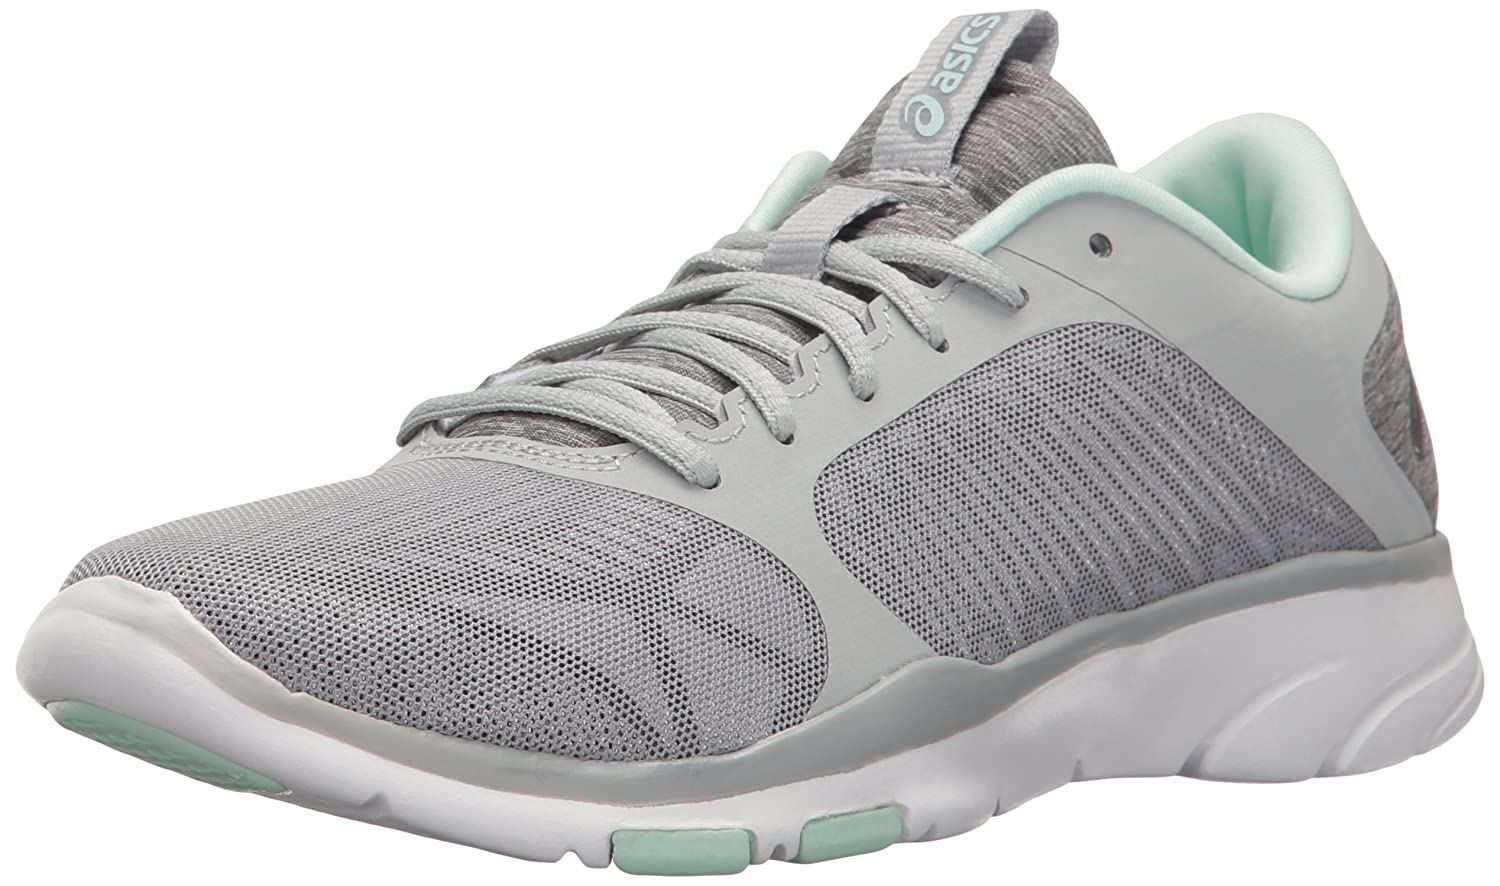 ASICS Women's Gel-Fit Tempo 3 Cross-Trainer Shoe B01H2NFA98 5 B(M) US|Mid Grey/Silver/Bay